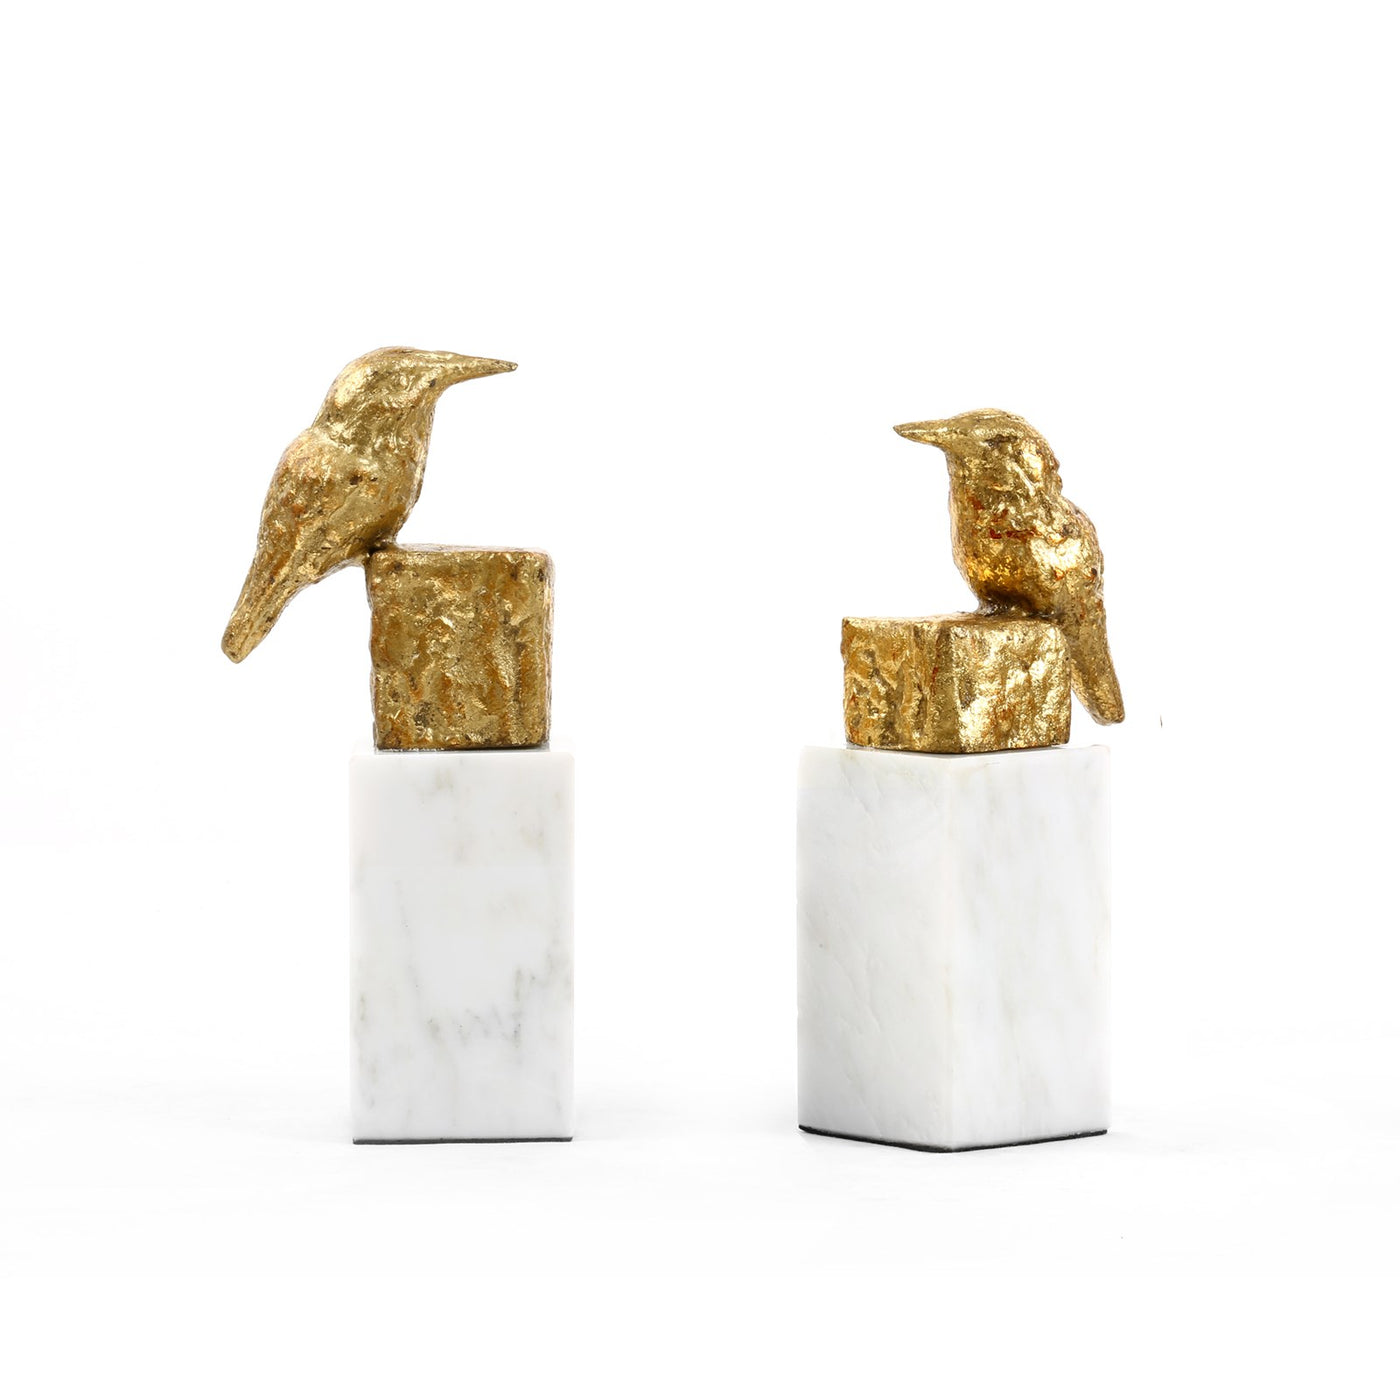 bungalow 5 finch statue pair gold angled